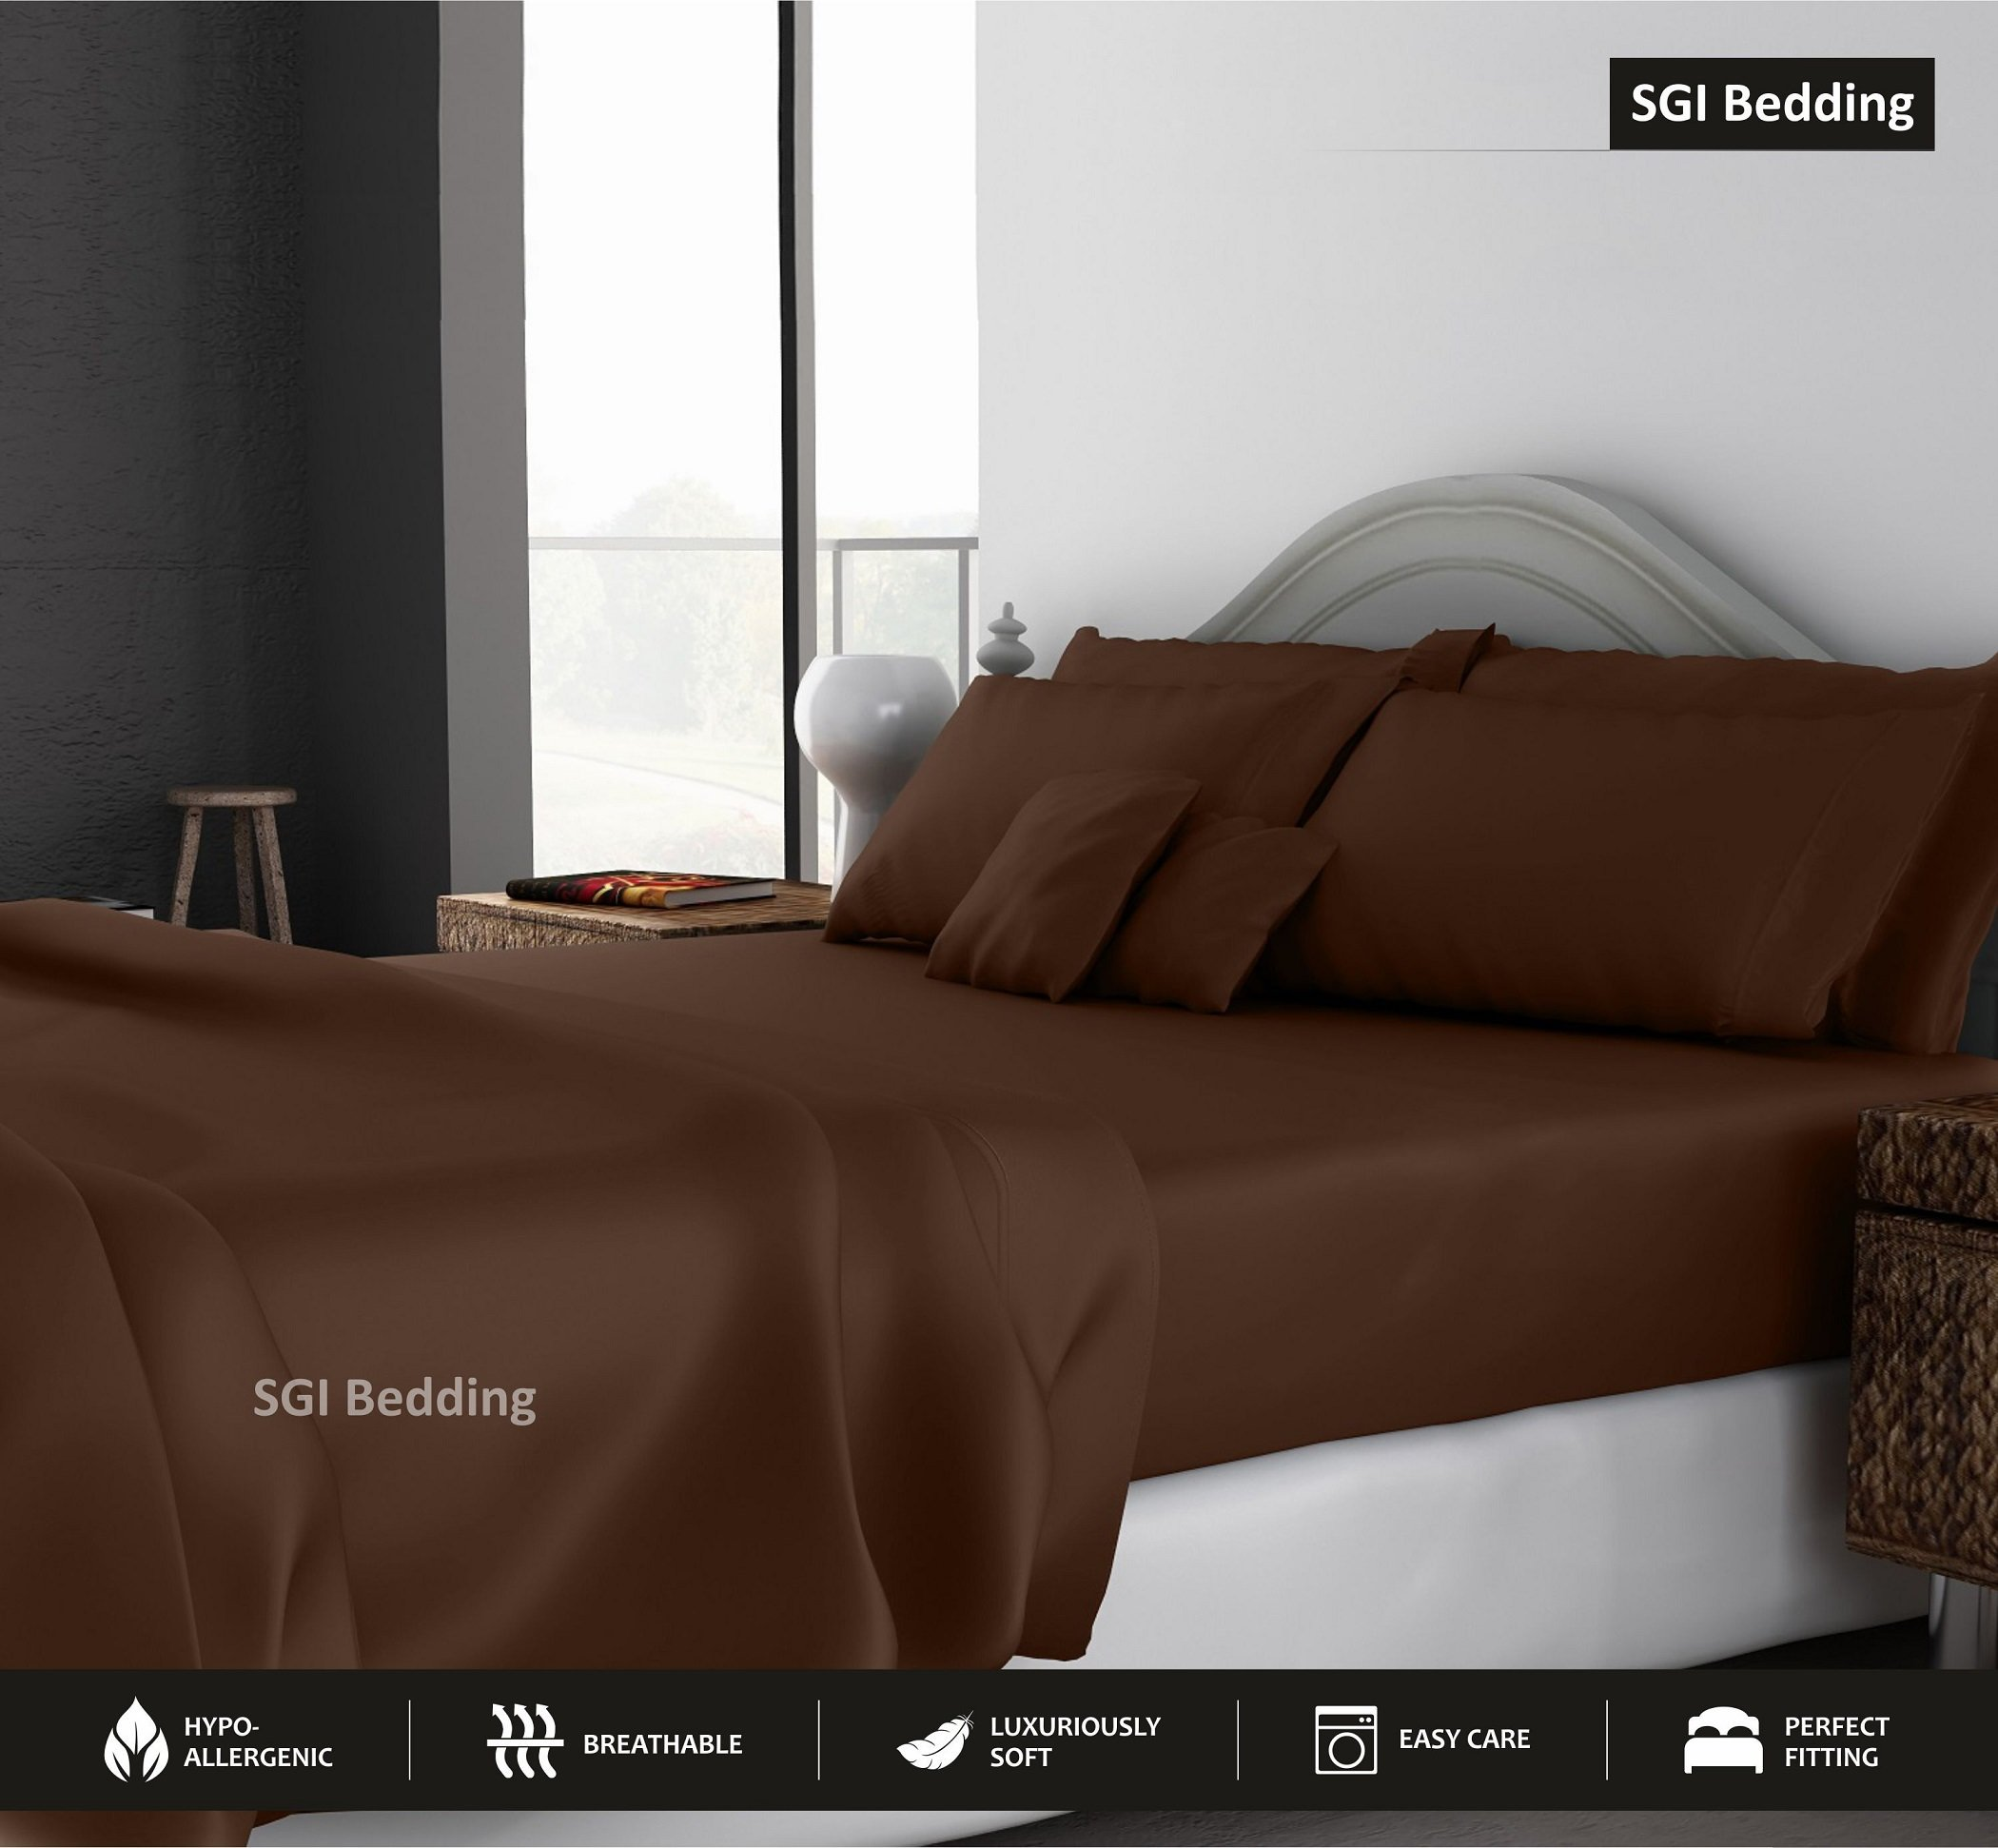 TWIN SIZE SHEETS LUXURY SOFT 100% EGYPTIAN COTTON -Exotic Bedding Collection Bed Sheet Set for Twin Size39x75'' Mattress Chocolate SOLID 600 Thread Count 15'' Deep Pocket